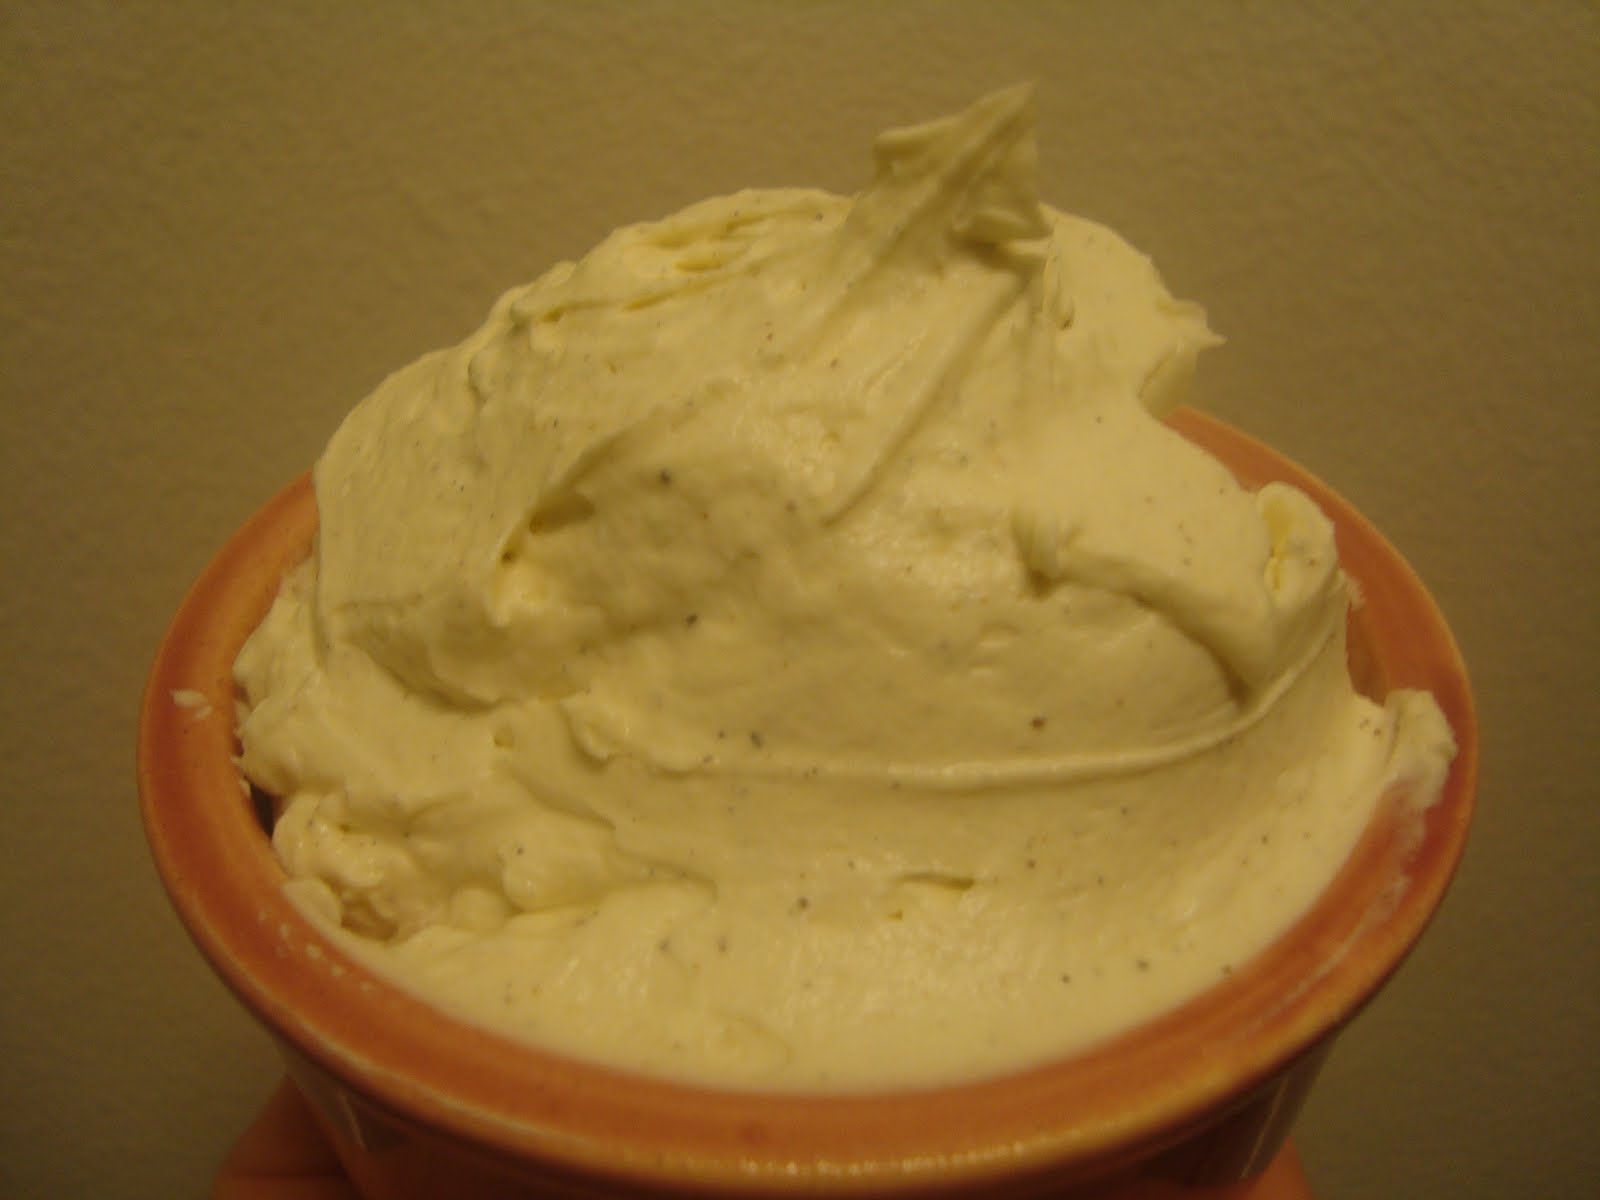 mascarpone frosting greek yogurt frosting a healthy frosting